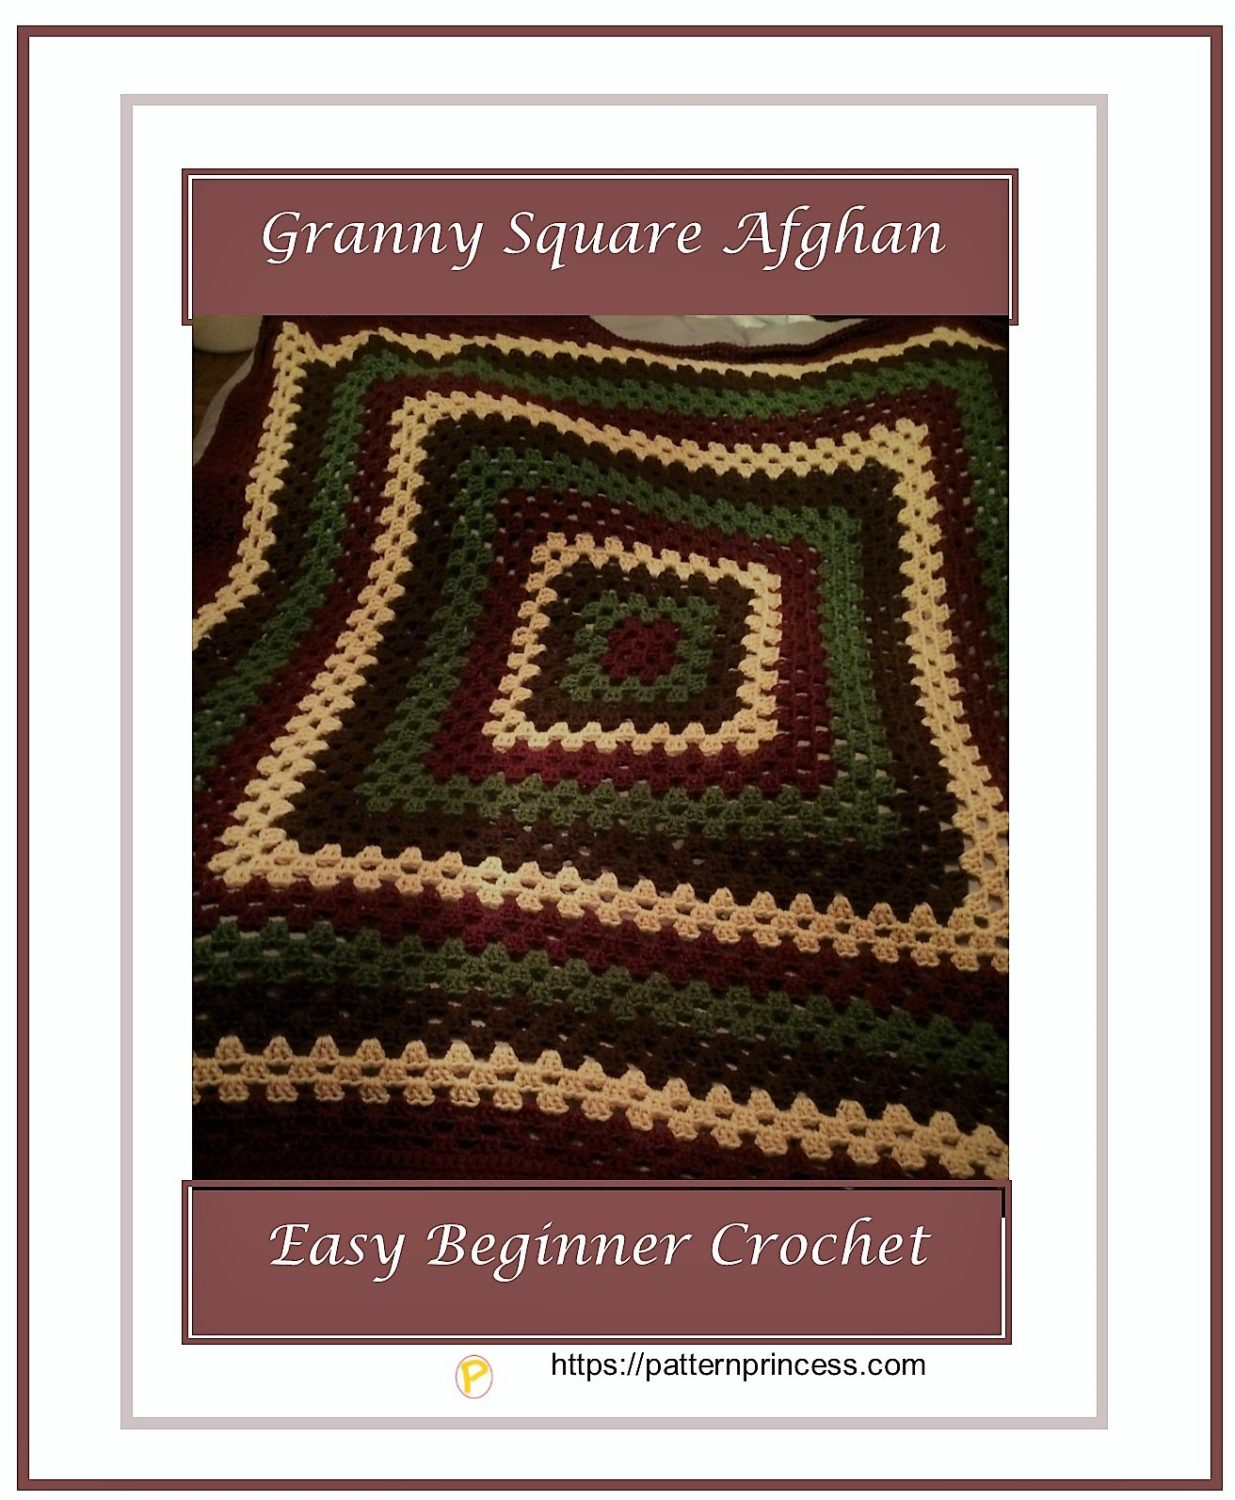 Granny Square Afghan 1